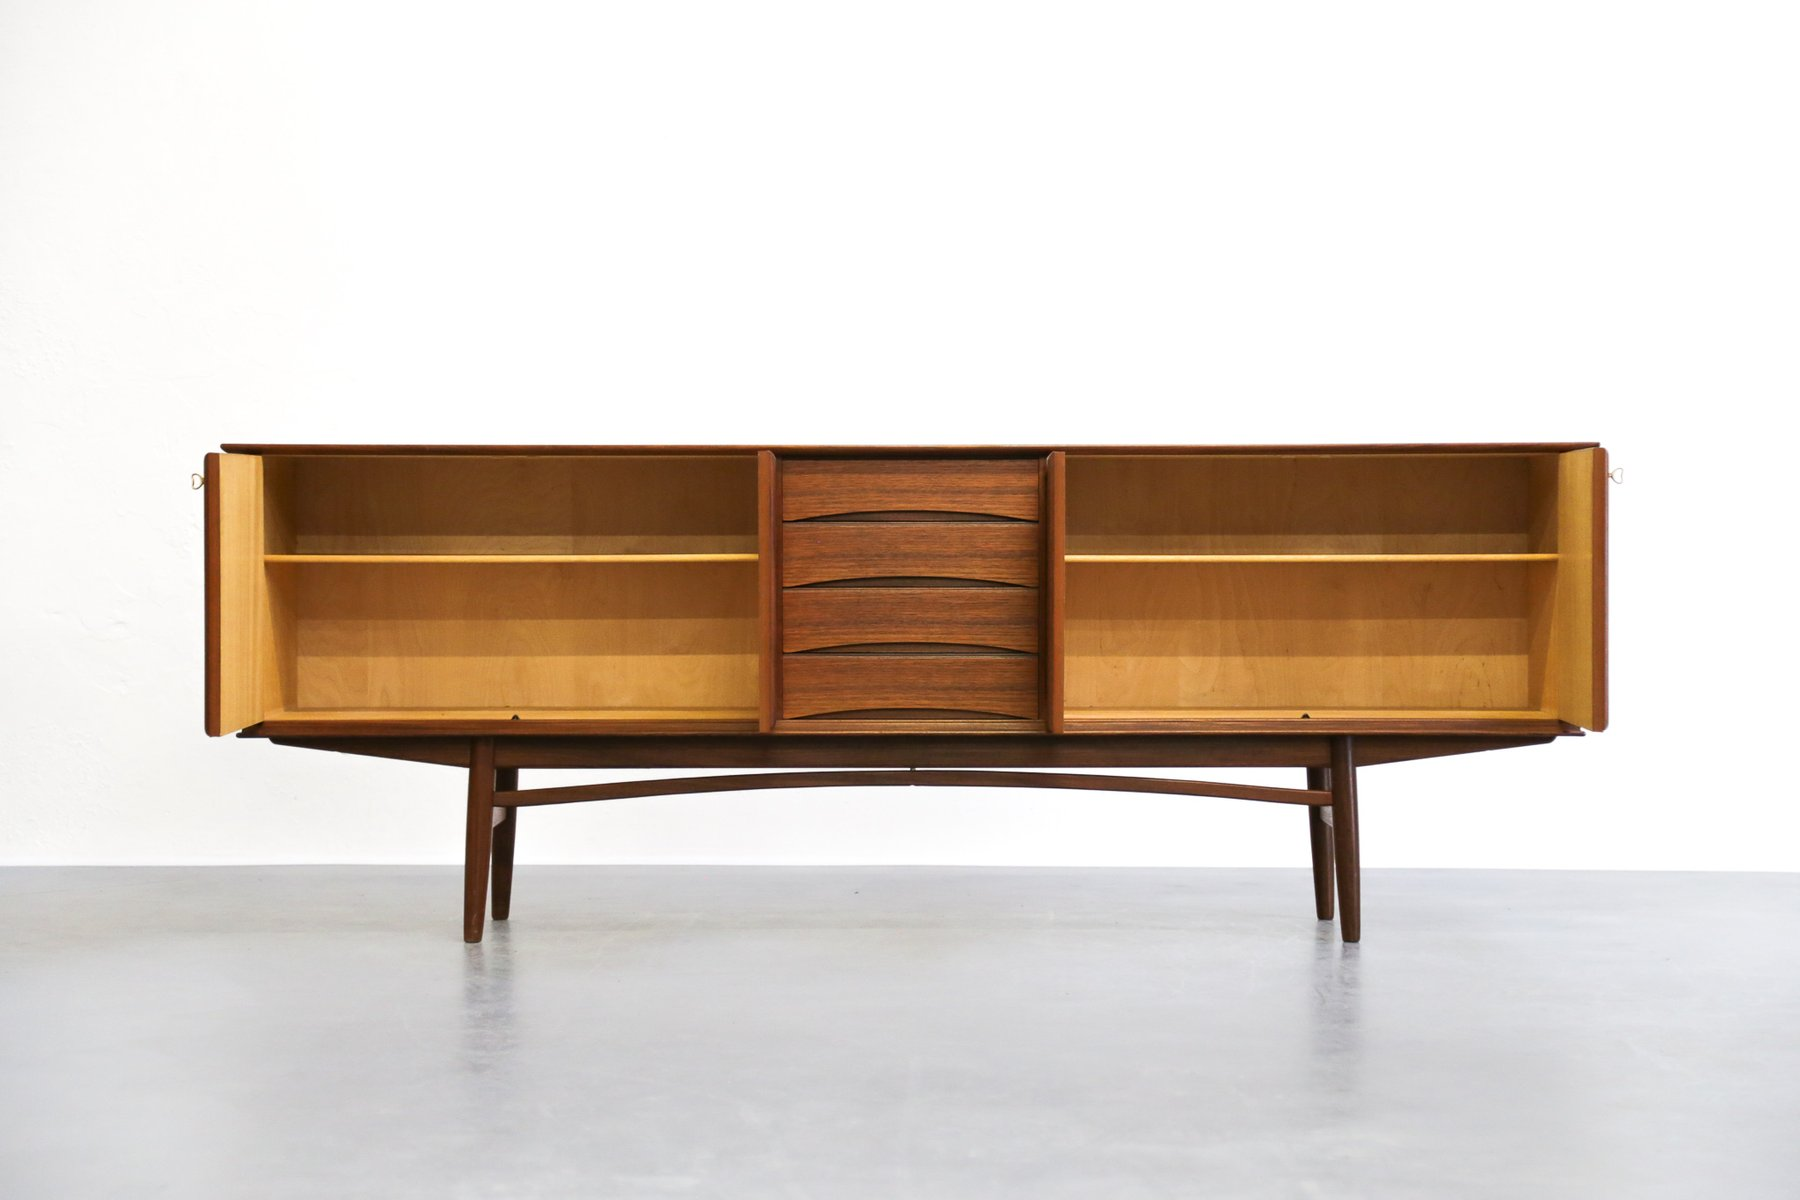 skandinavisches teak sideboard von rastad relling f r gustav bahus 1960er bei pamono kaufen. Black Bedroom Furniture Sets. Home Design Ideas